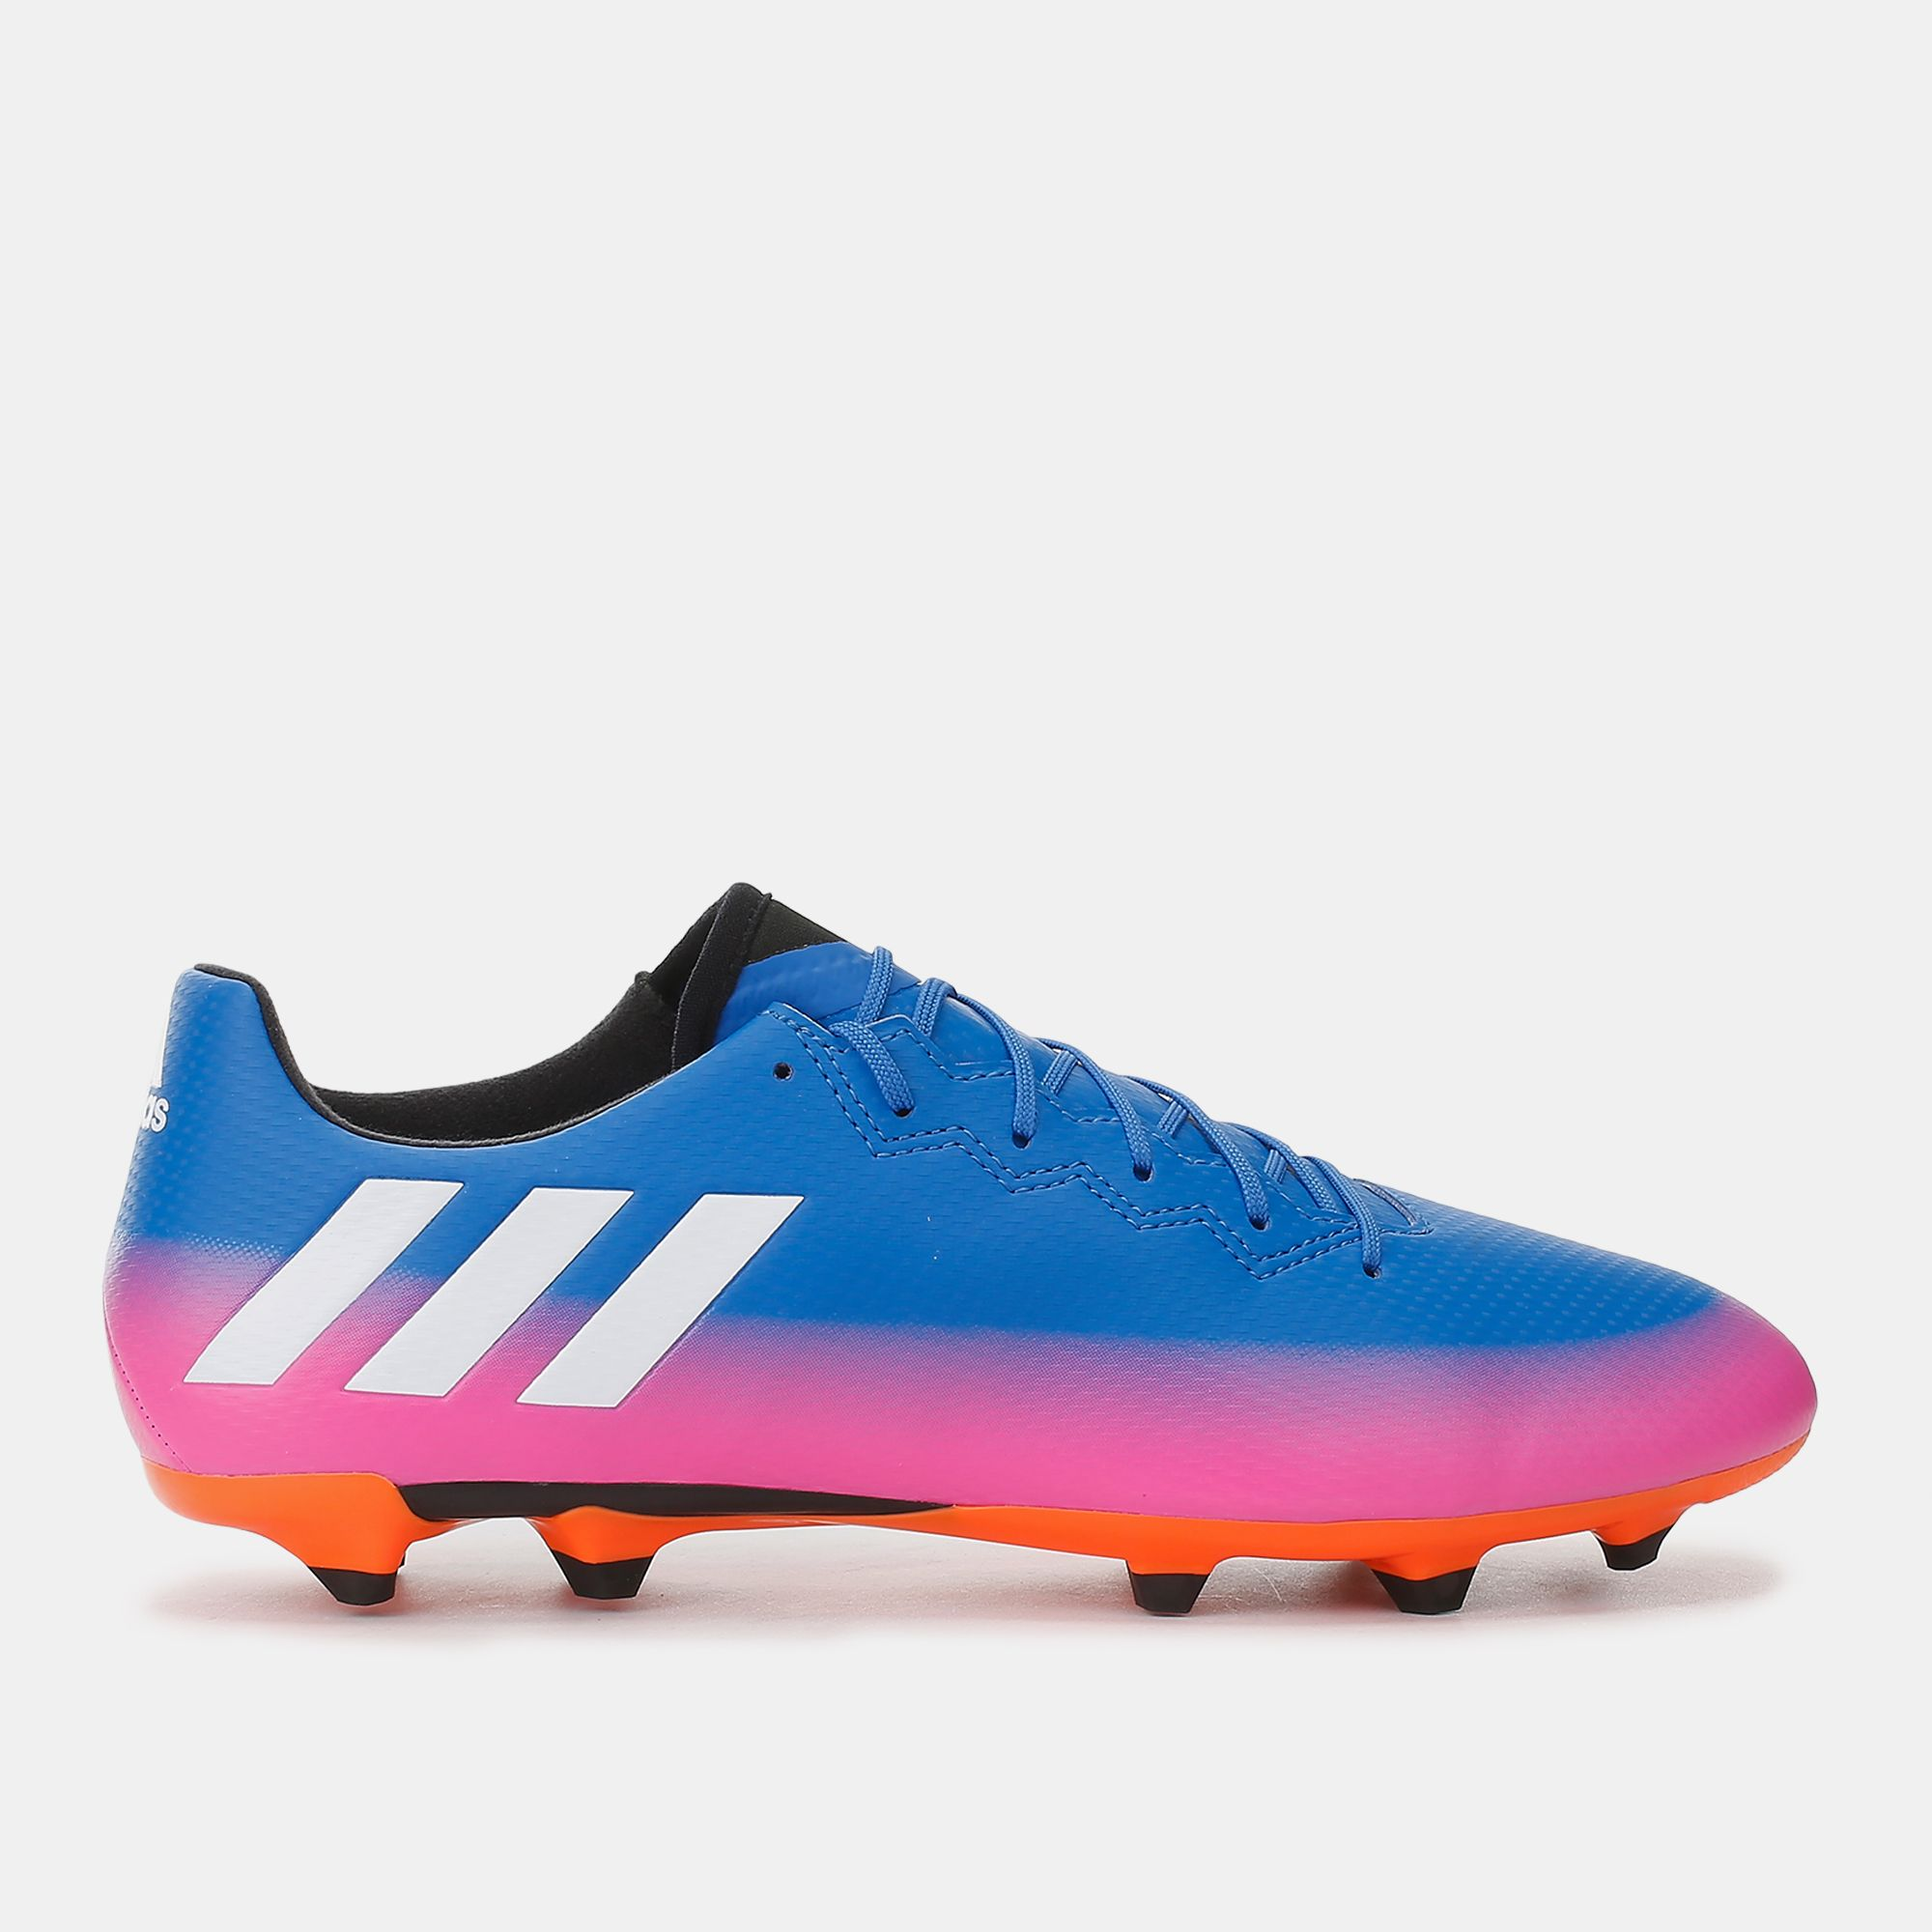 65abdd3248e Shop Blue adidas Messi 16.3 Firm Ground Football Shoe for Mens by ...